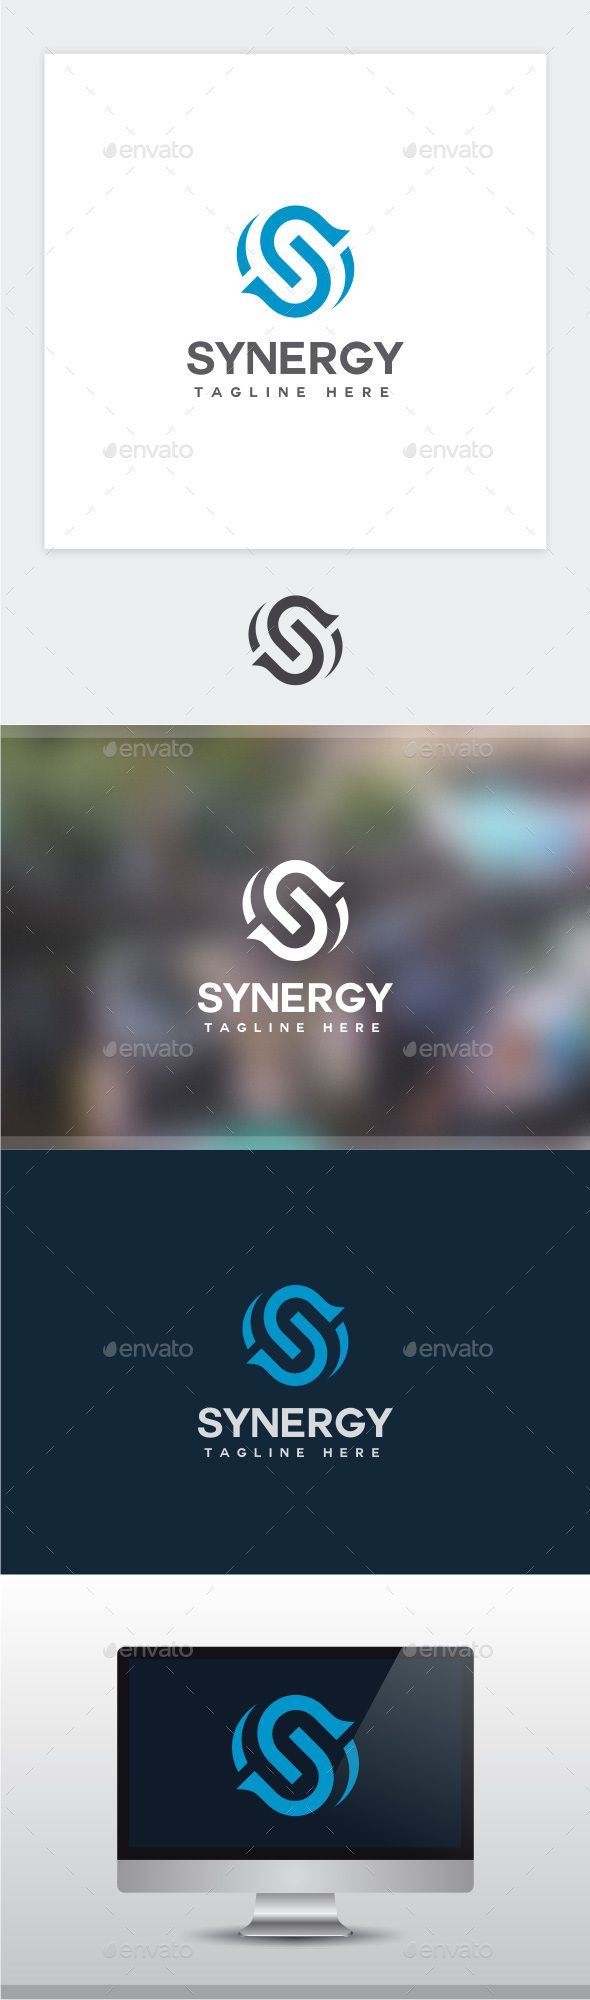 Synergy  Letter S Logo — Photoshop PSD #internet #app • Available here → https://graphicriver.net/item/synergy-letter-s-logo/16572539?ref=pxcr